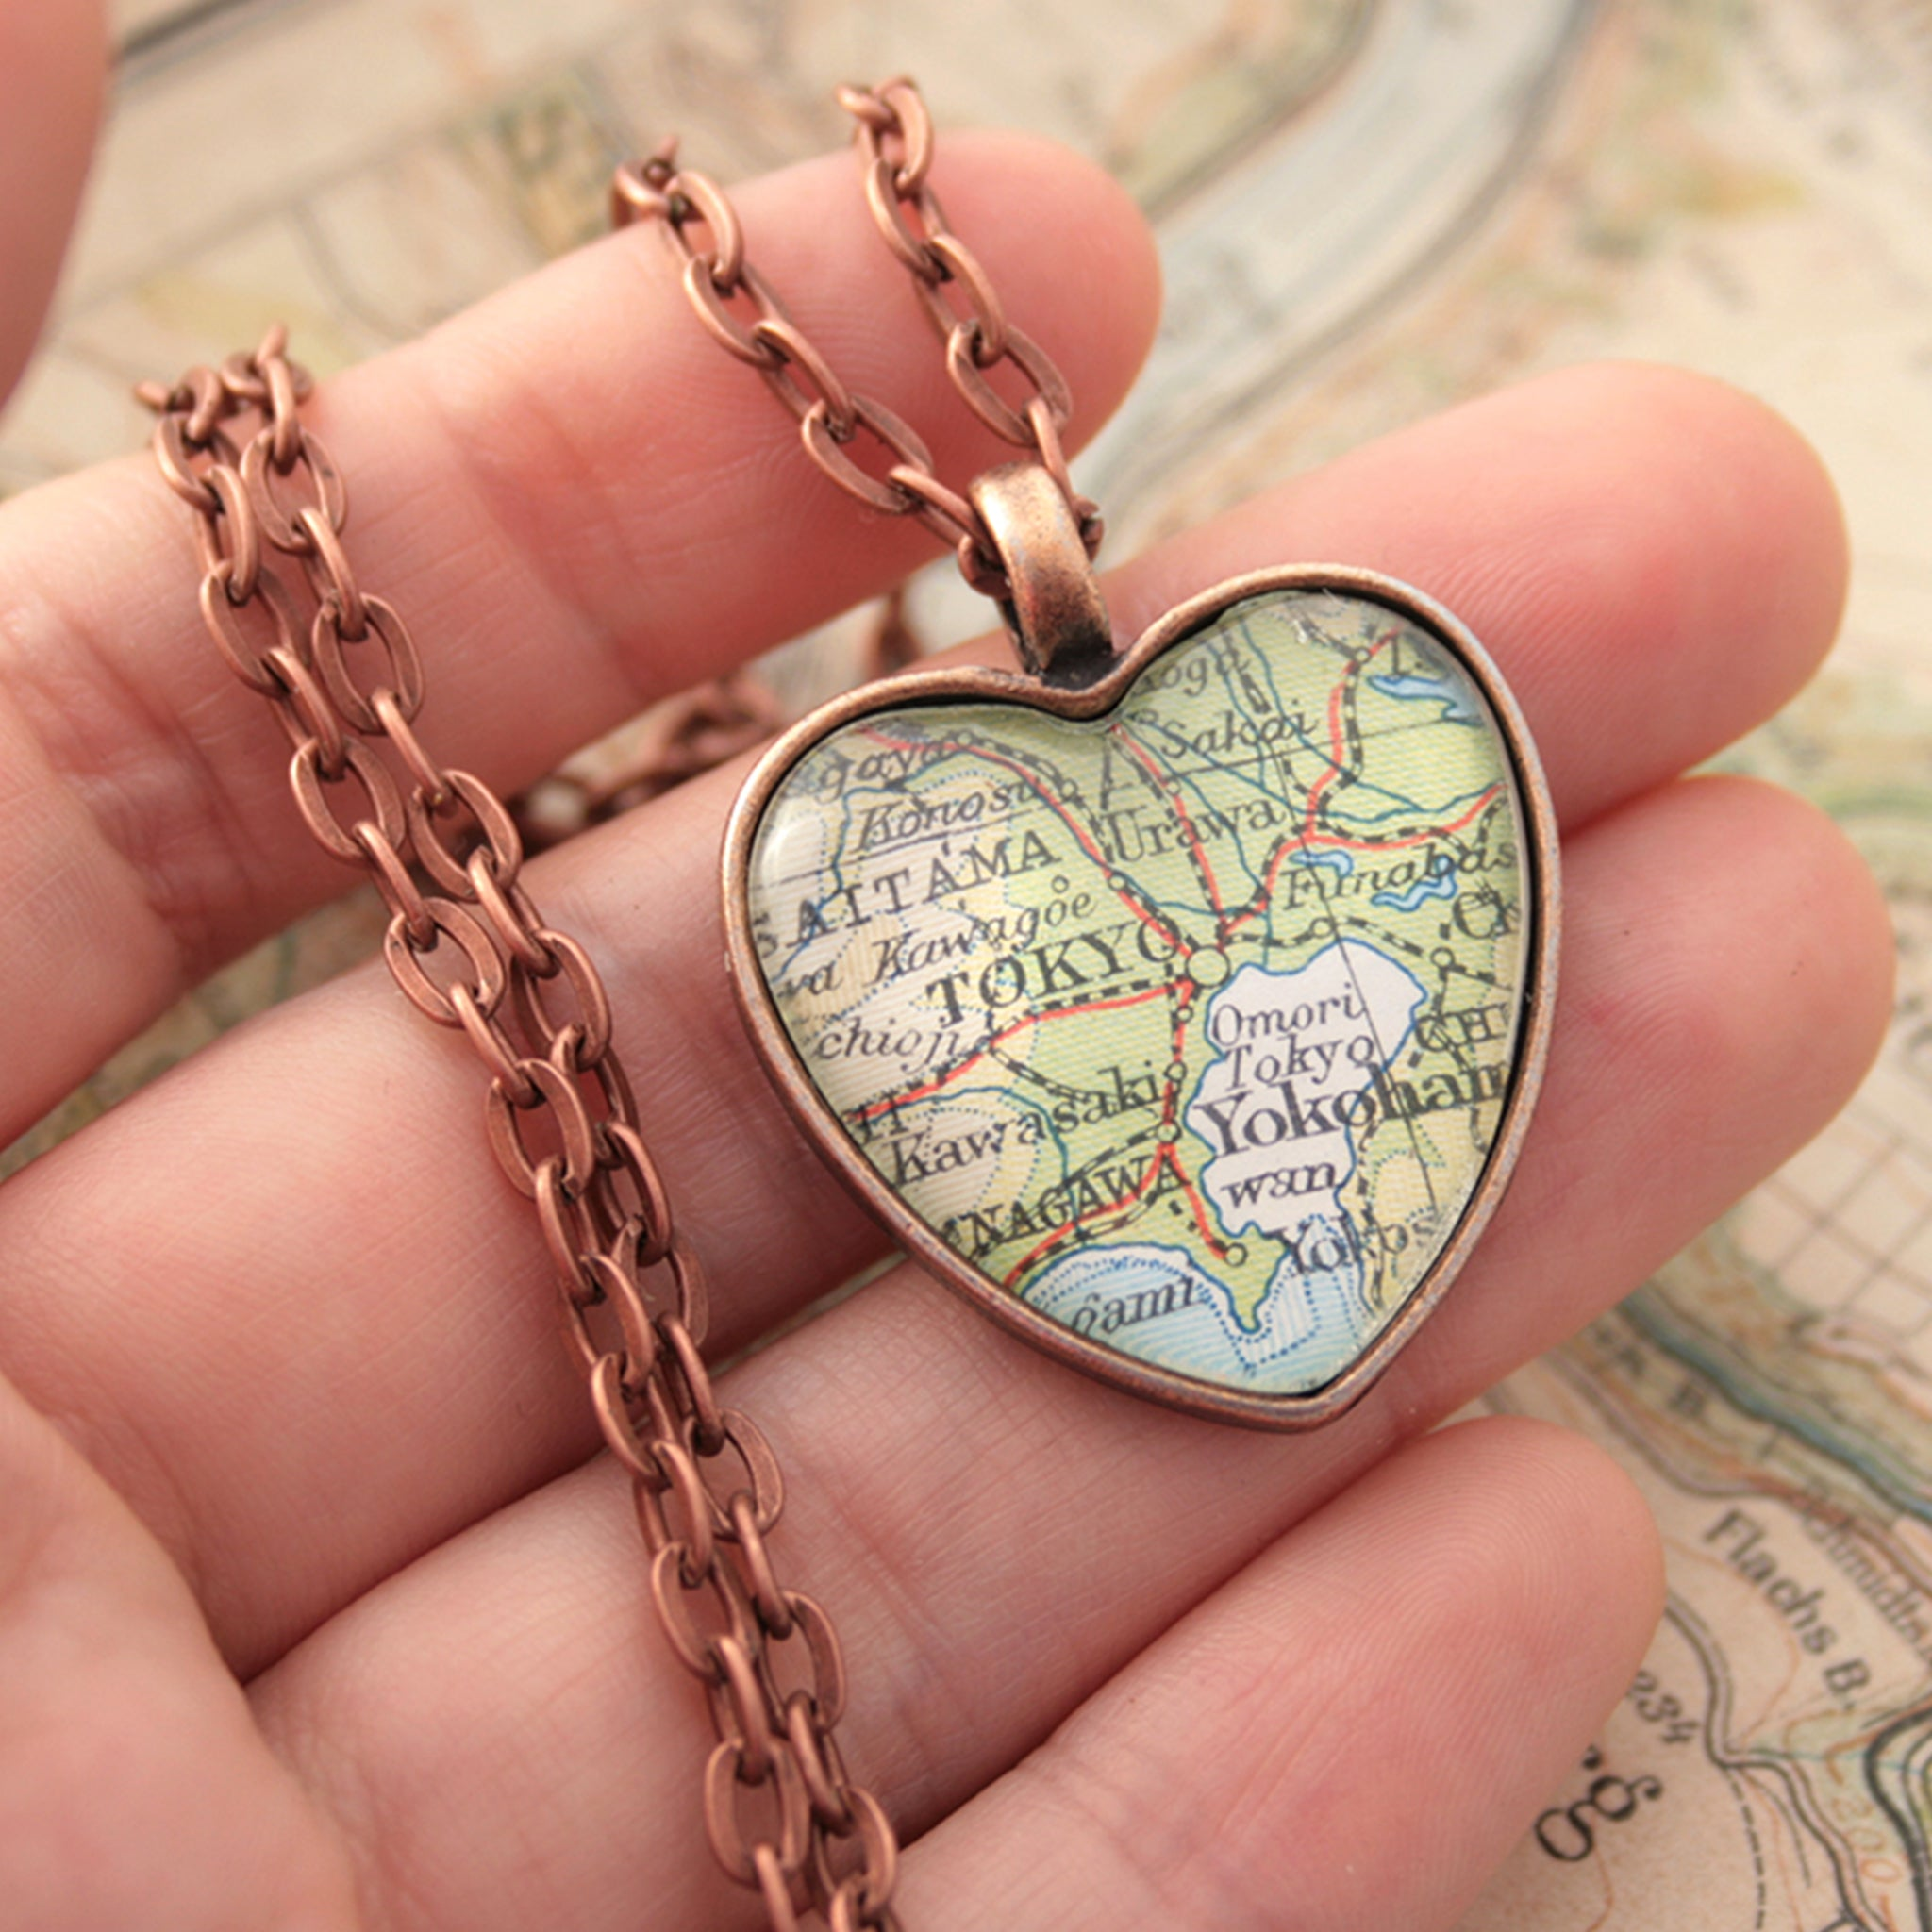 Hold in hand heart shaped pendant necklace in copper tone featuring map of Tokyo